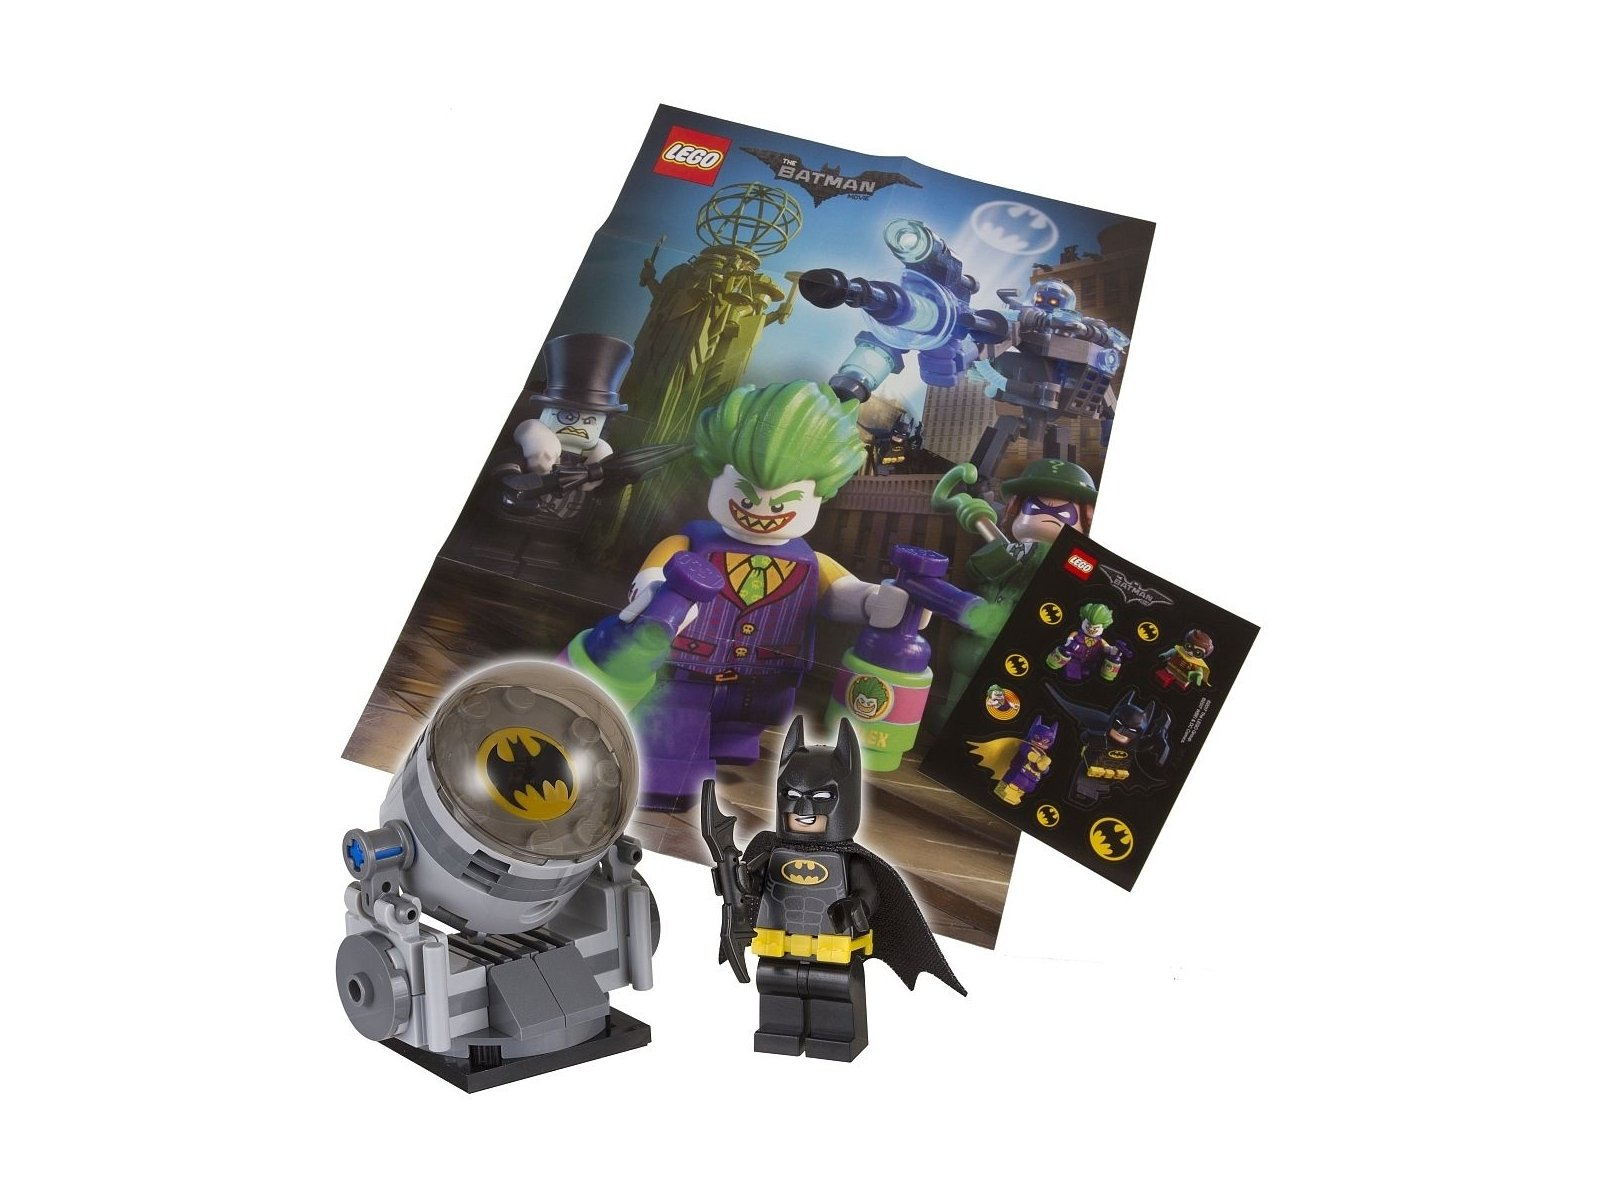 LEGO 5004930 Batman Movie Accessory pack